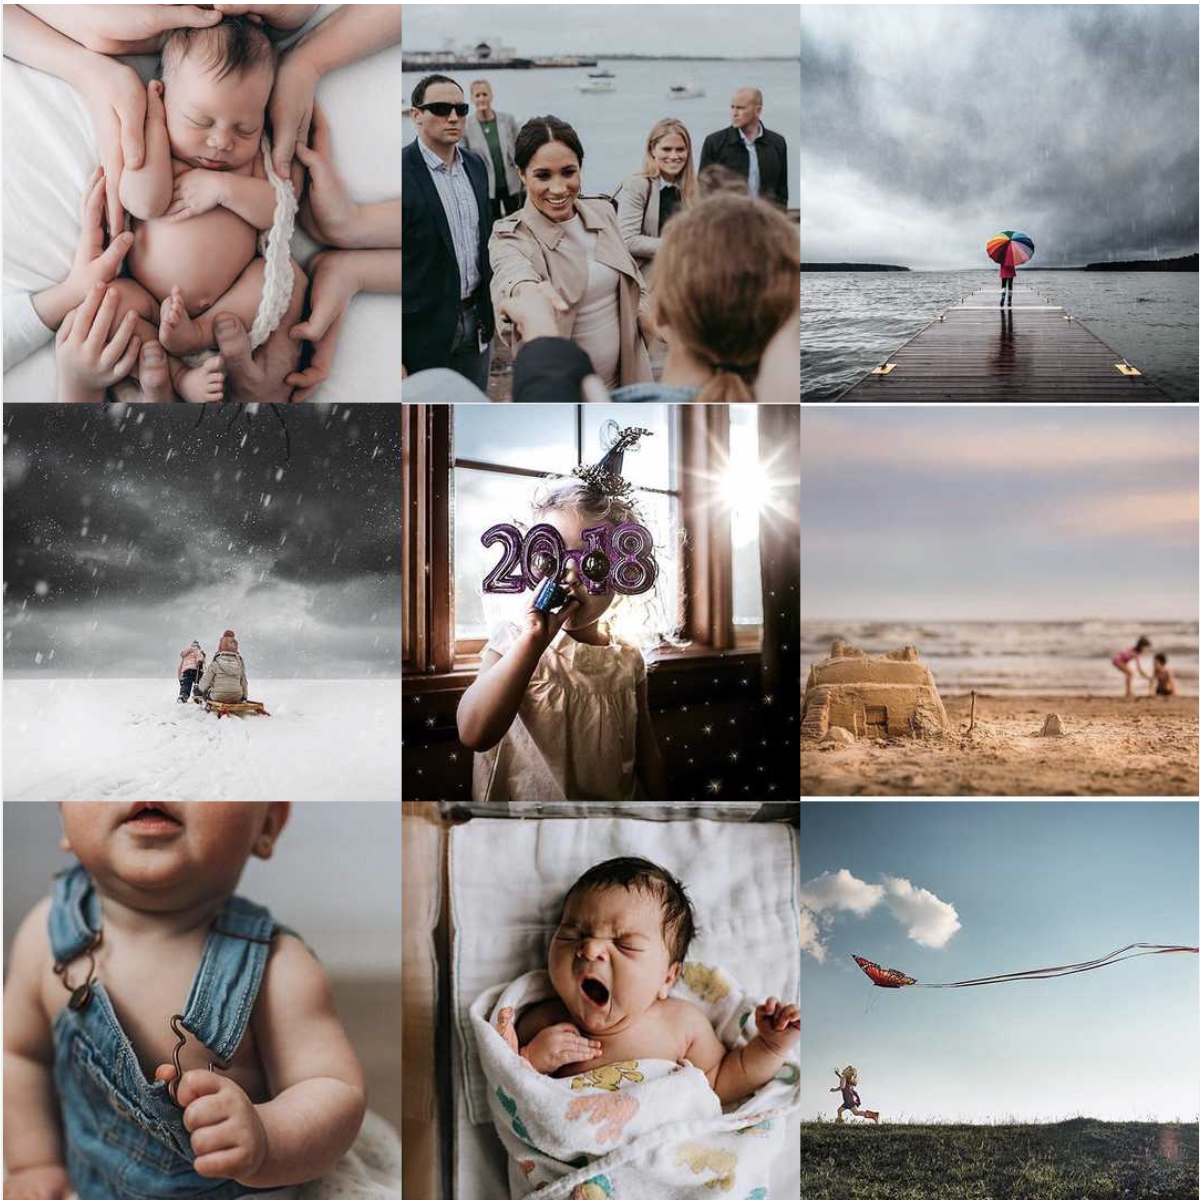 Best Nine of 2018 on Instagram – How to Find Yours!